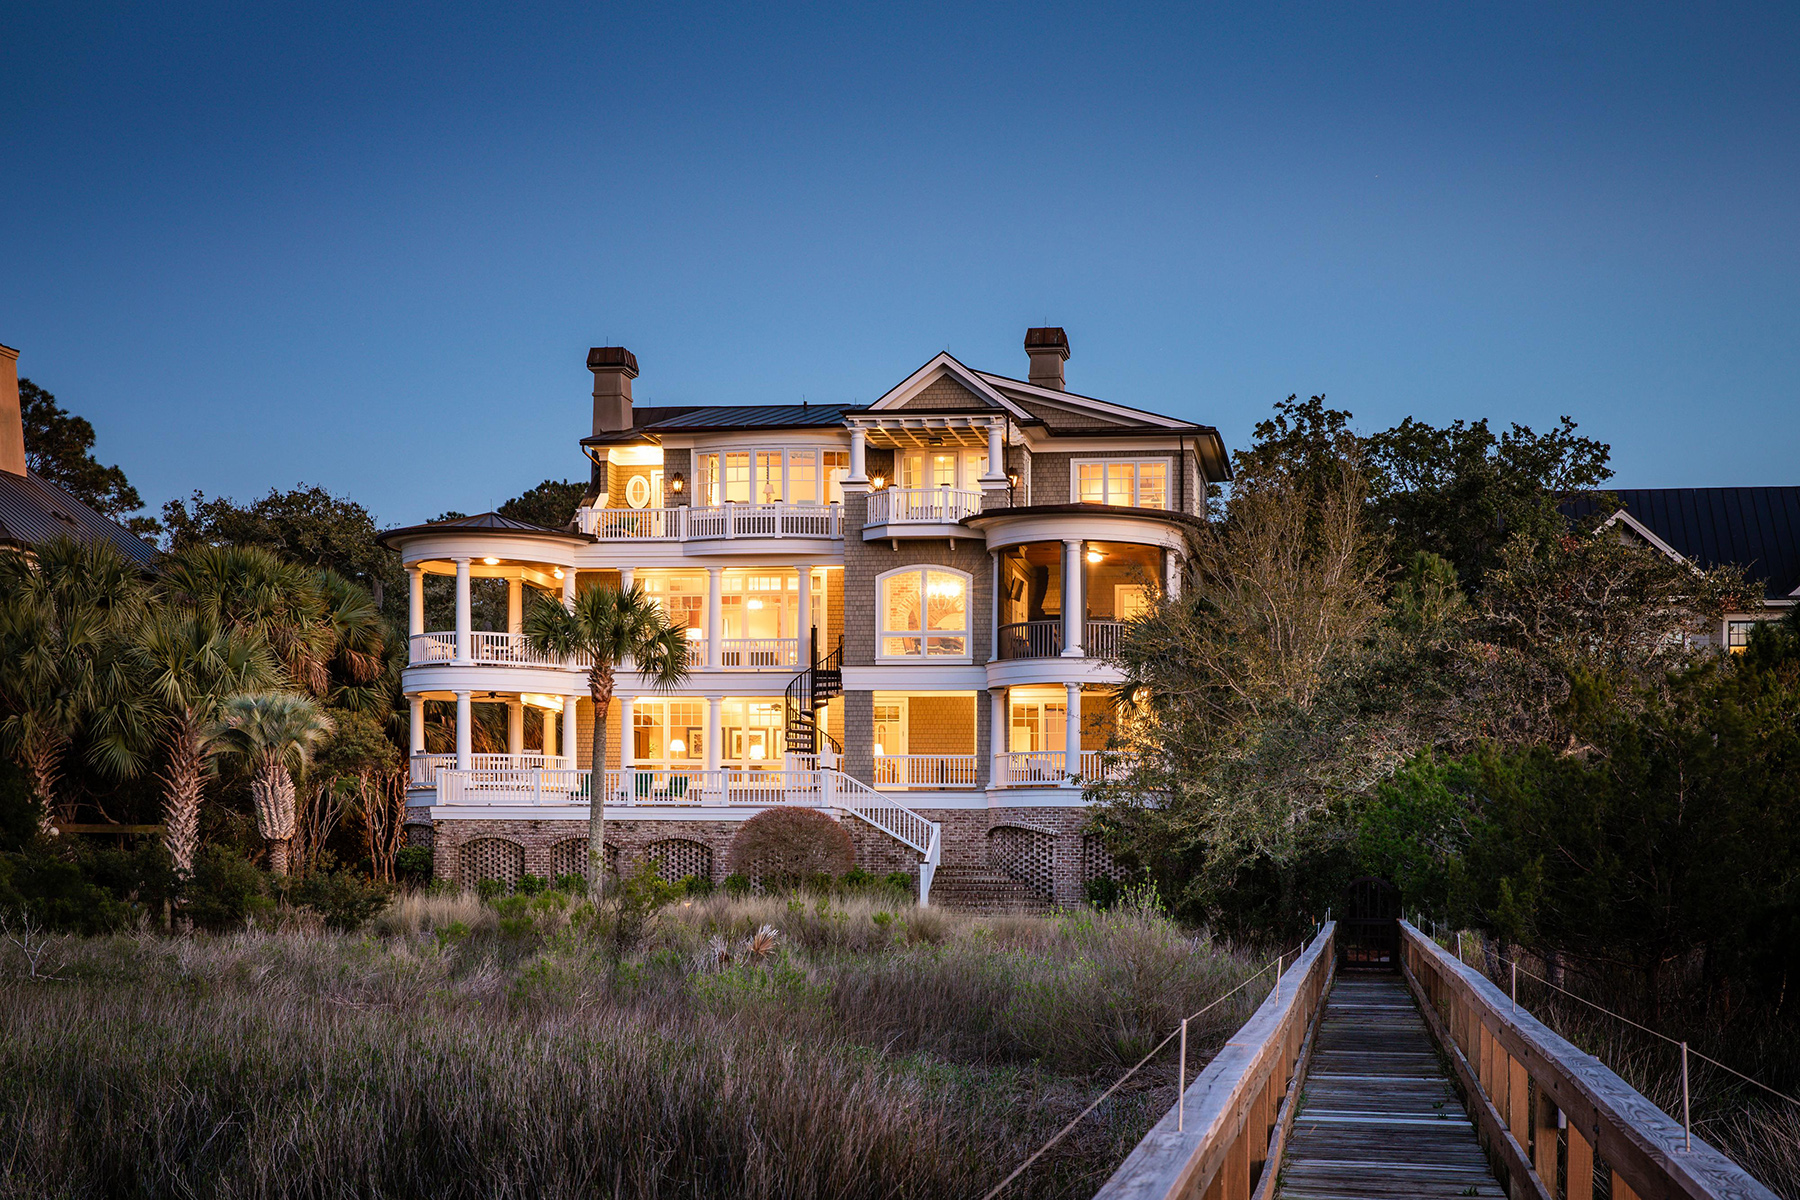 Single Family Homes for Sale at 51 River Marsh Lane Kiawah Island, South Carolina 29455 United States